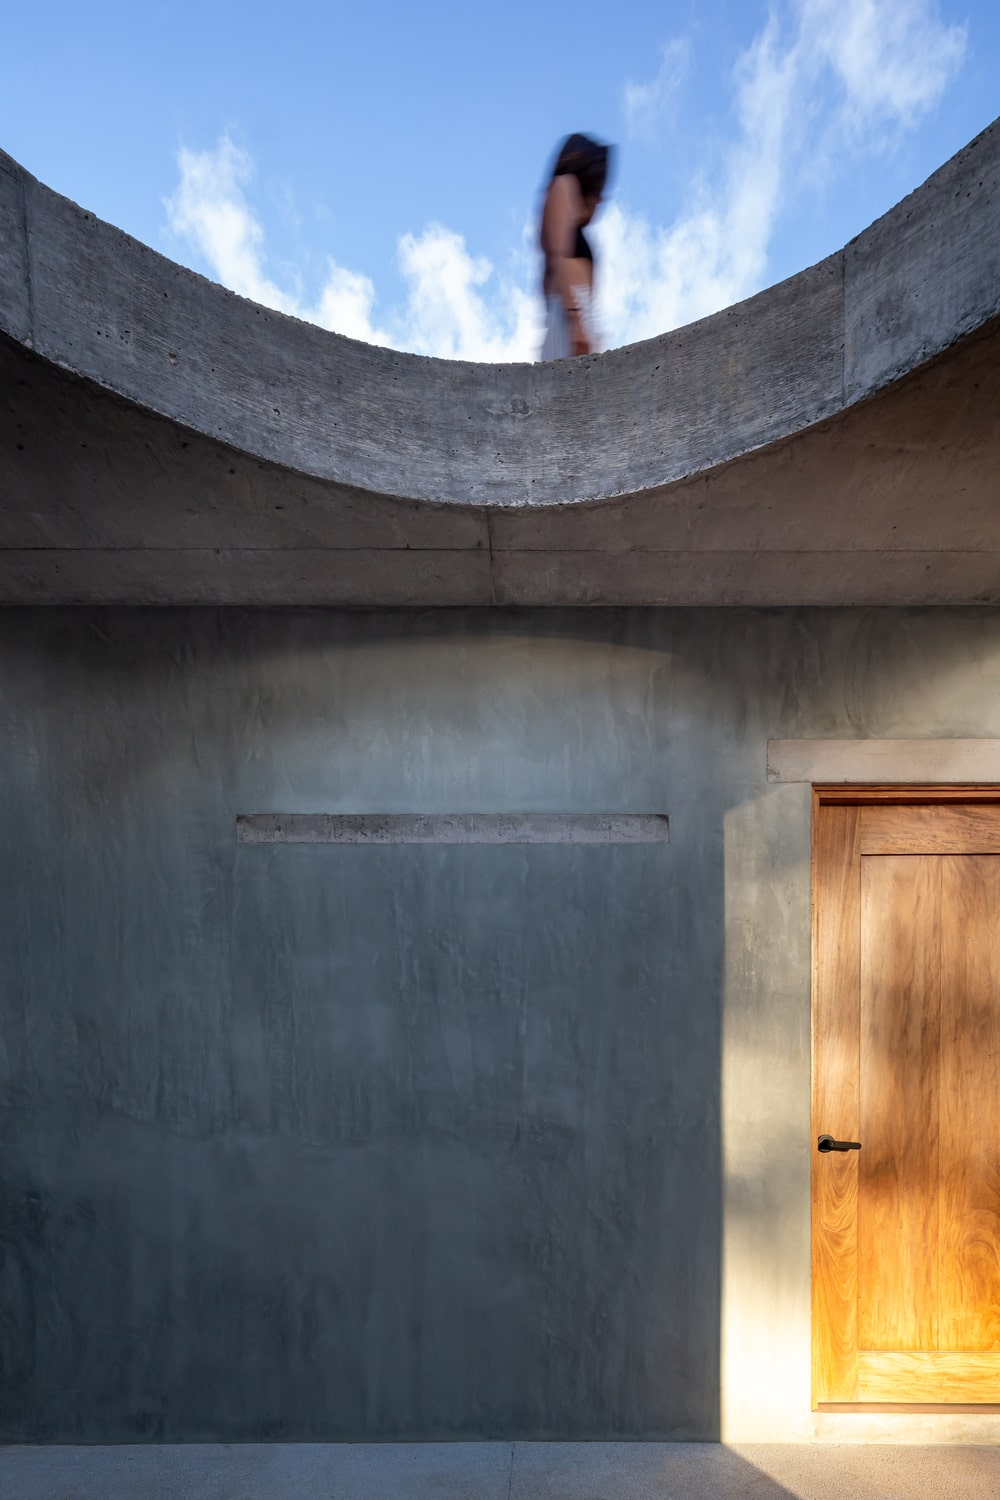 This is a close look at the concrete wall that pairs well with the wooden door of the bedroom.